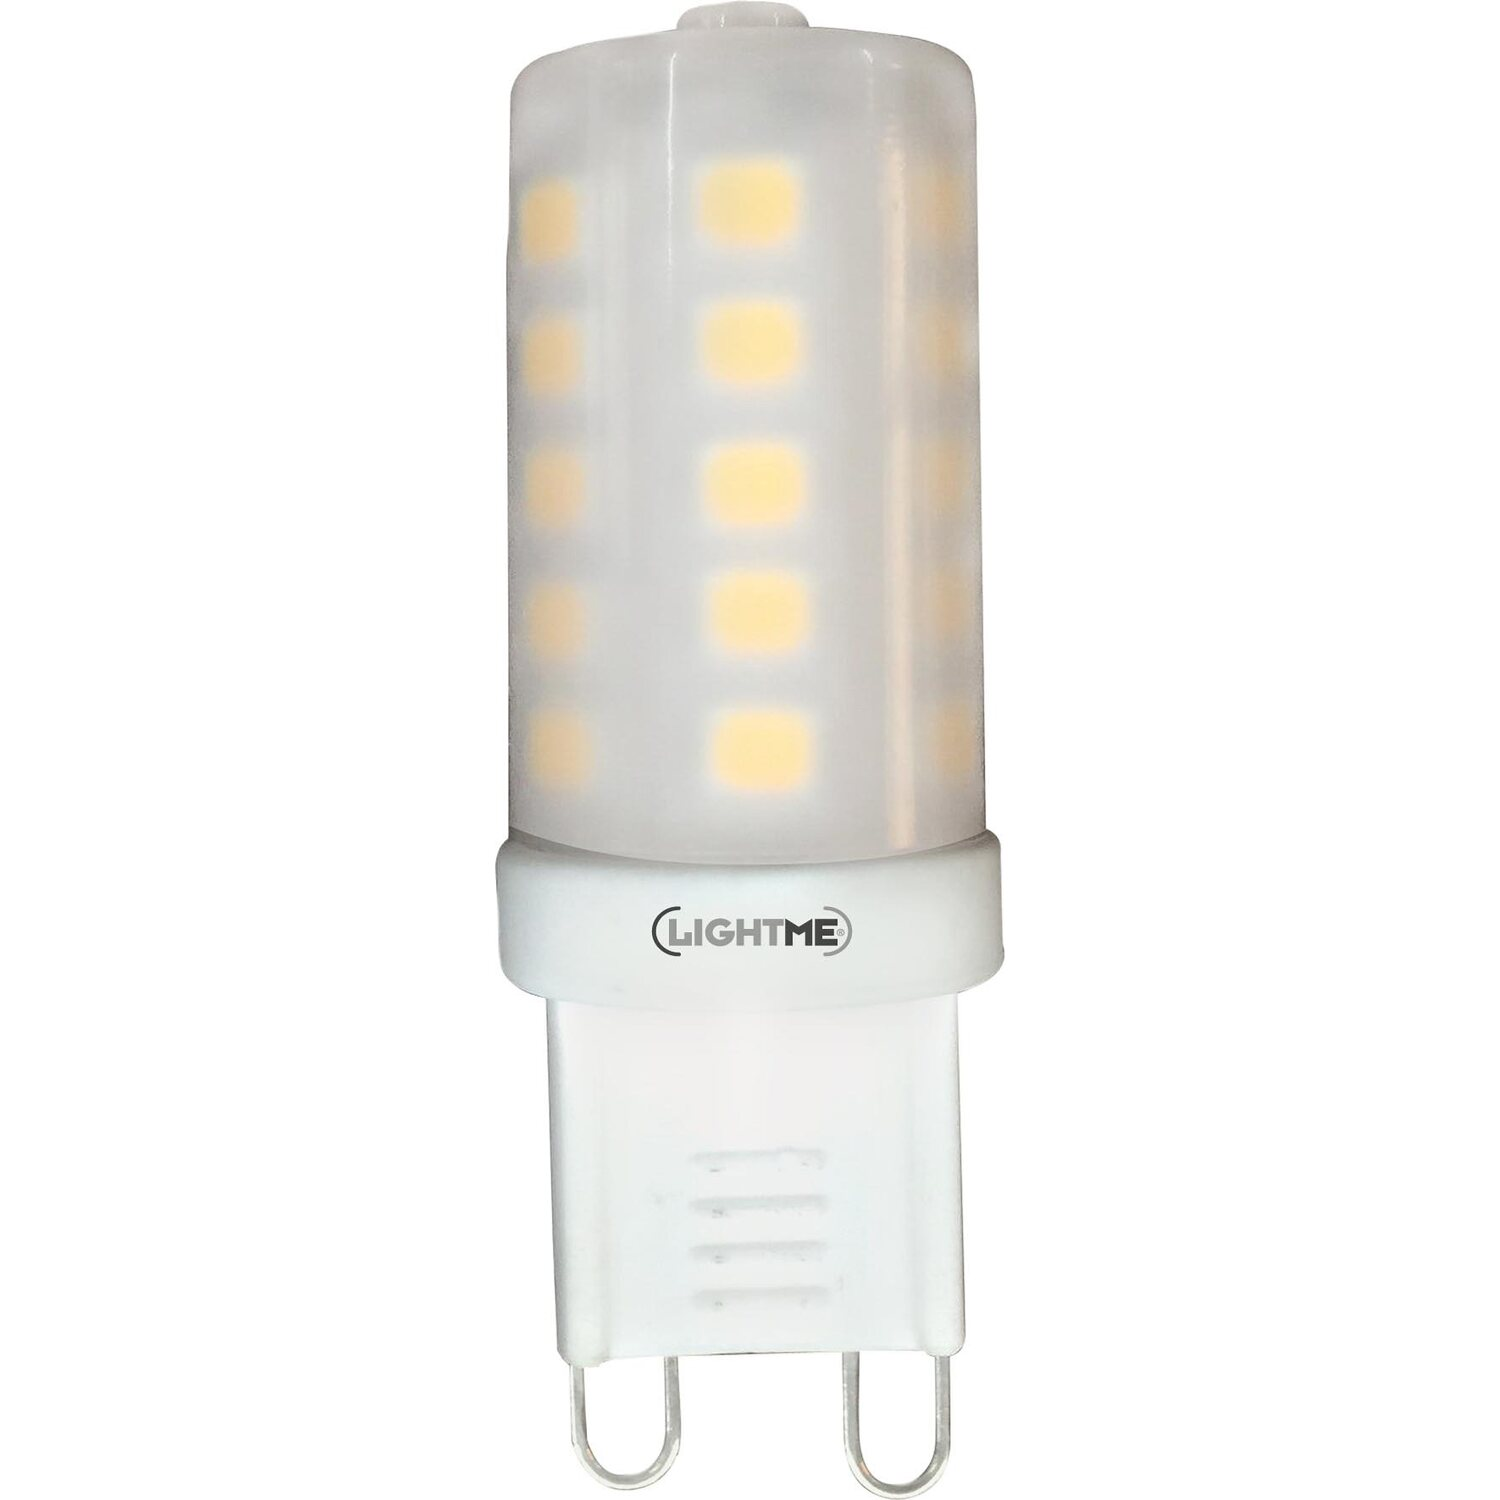 Lightme LED-Leuchtmittel G9/ 3 W (250 lm) Warmw...